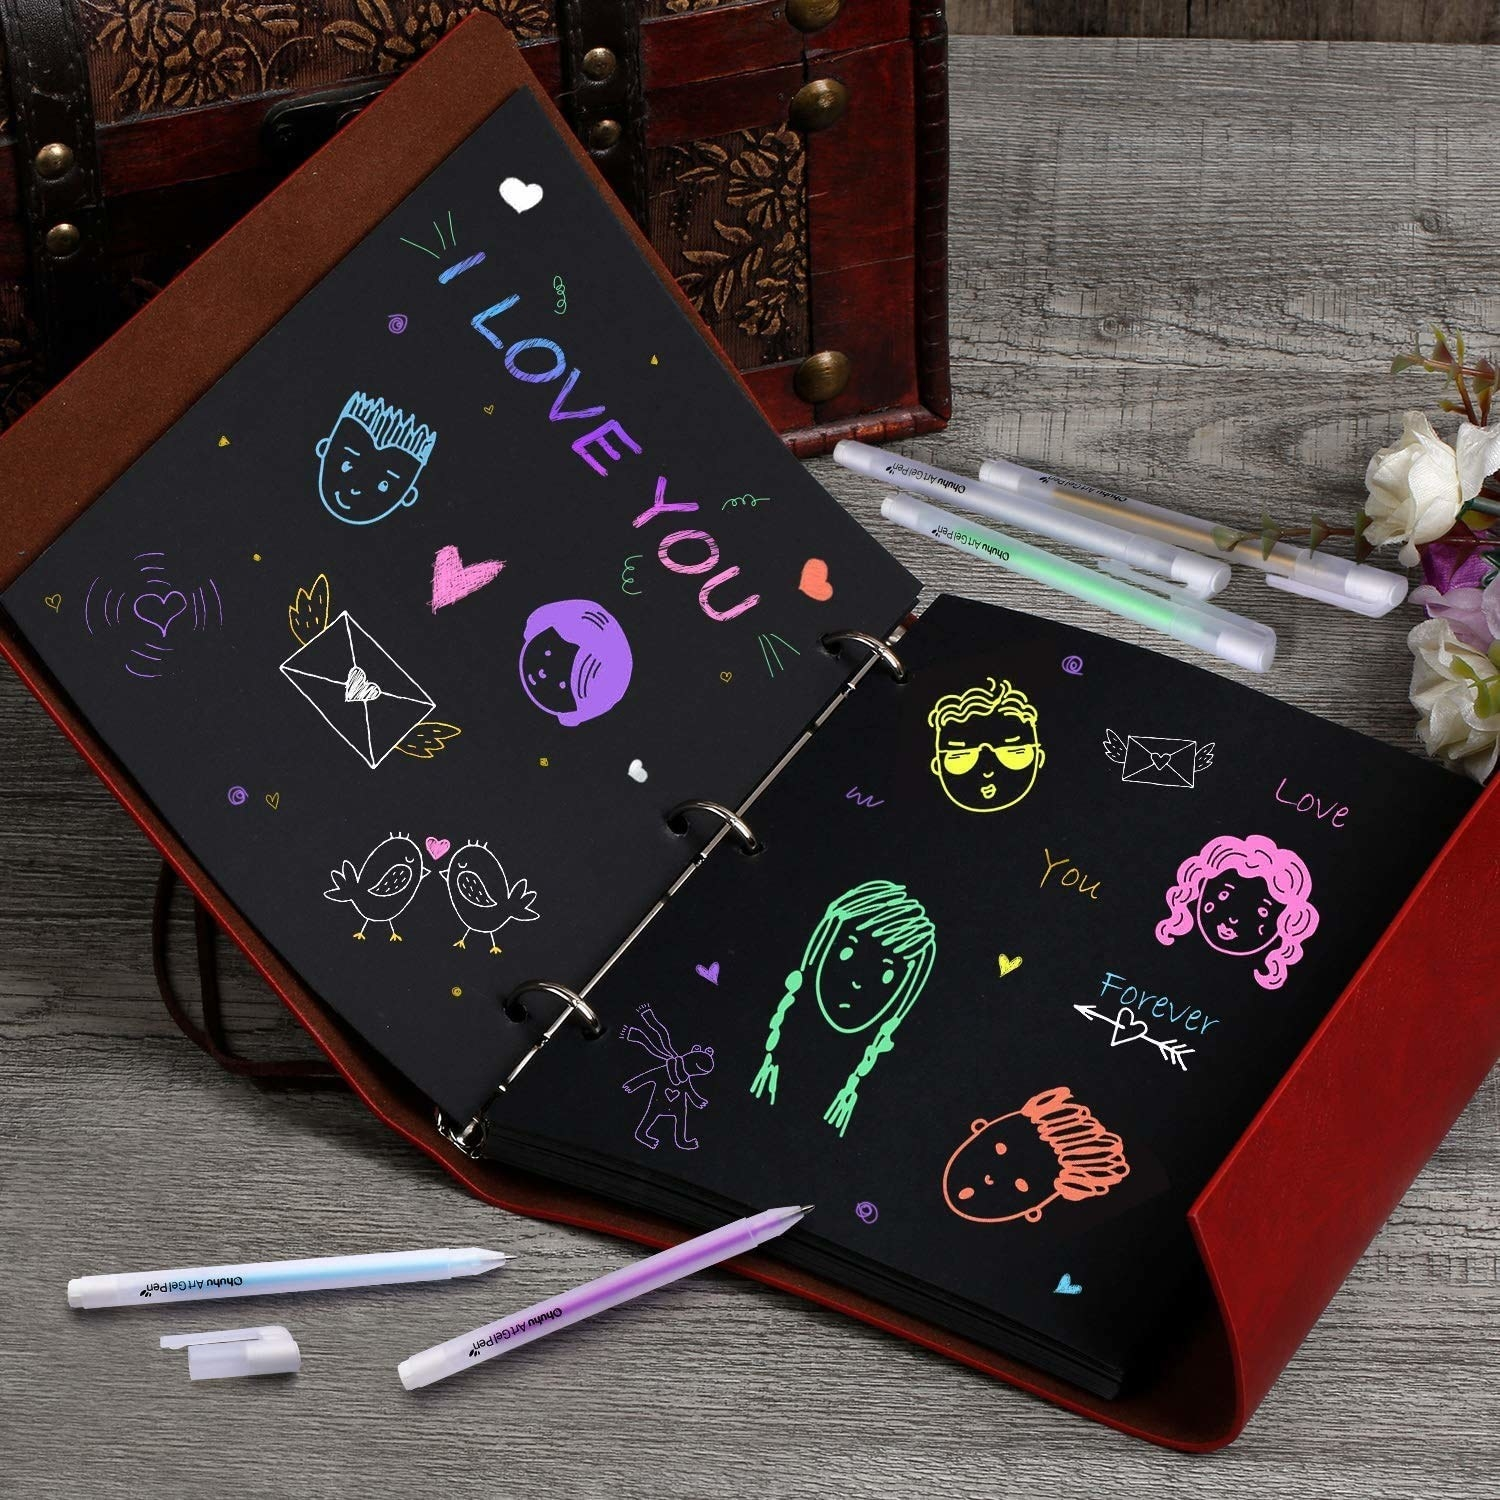 A notebook with black pages filled with colourful drawings created with the gel pens.